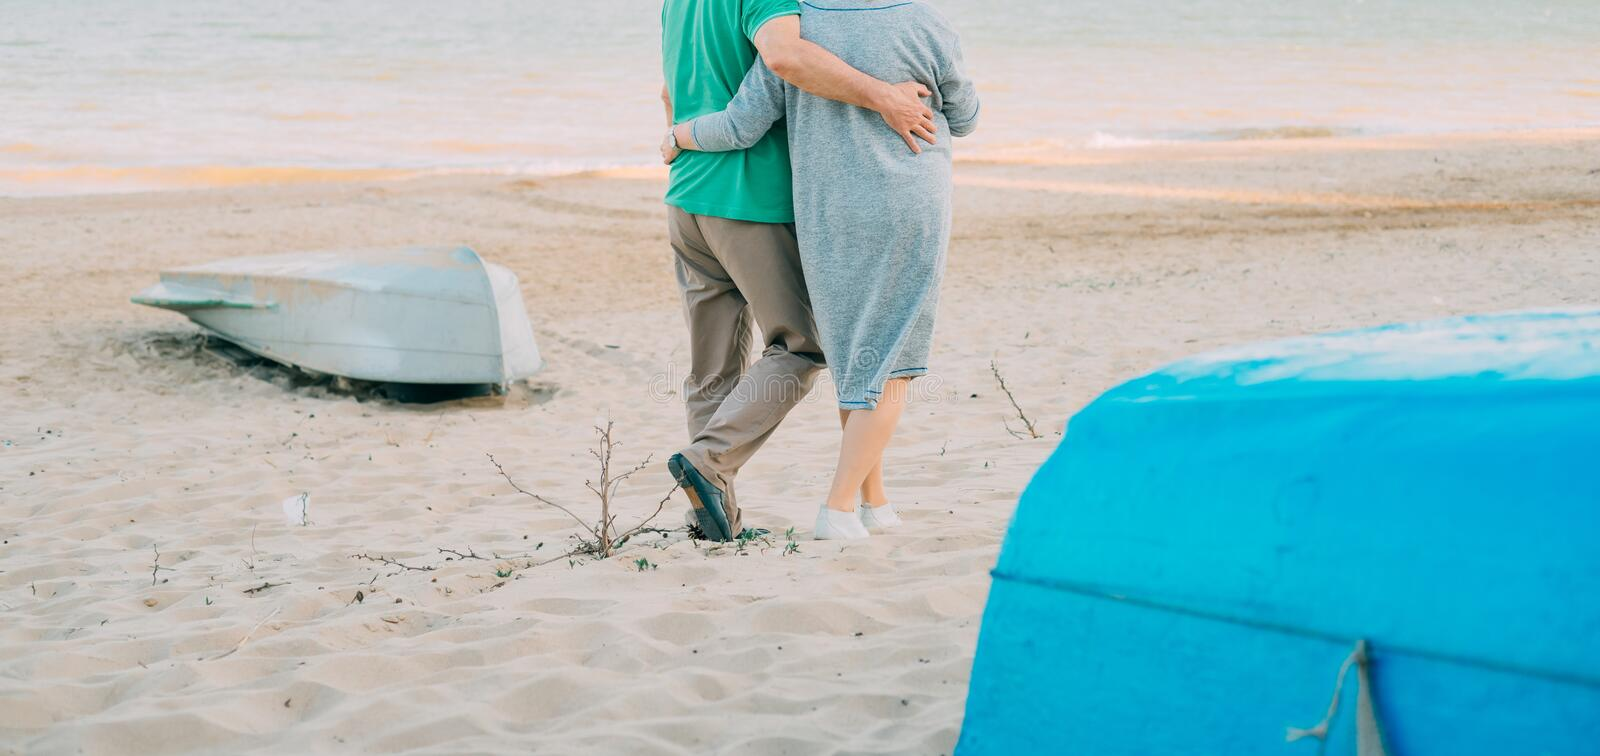 Outdoor shot of romantic senior couple walking along the sea shore holding hands. Senior man and woman walking on the beach togeth royalty free stock photo